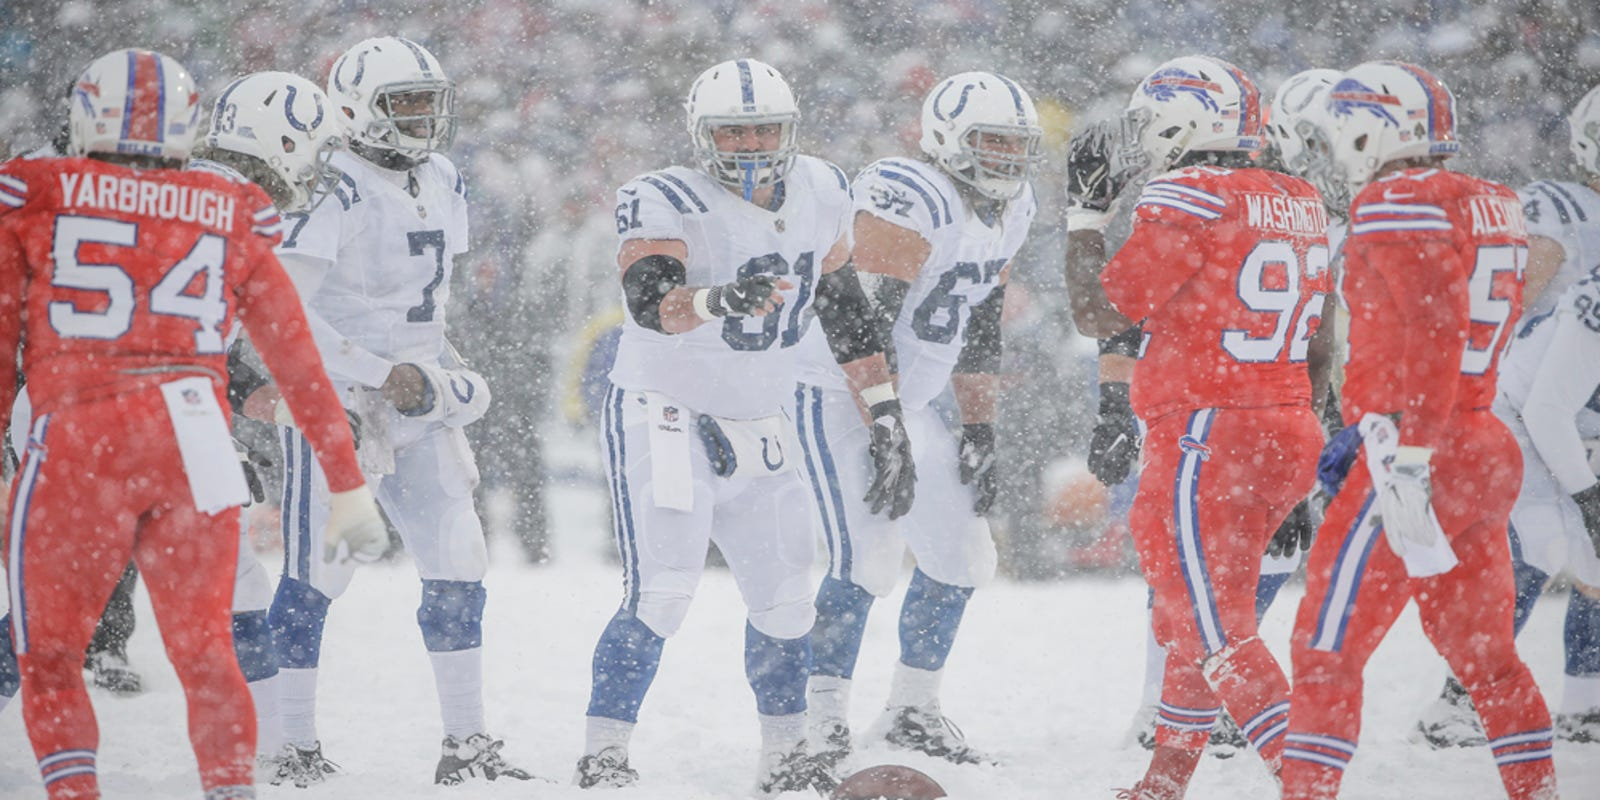 1bdd6fe2 Colts: Nothing goes according to plan for Colts vs. Bills in the snow